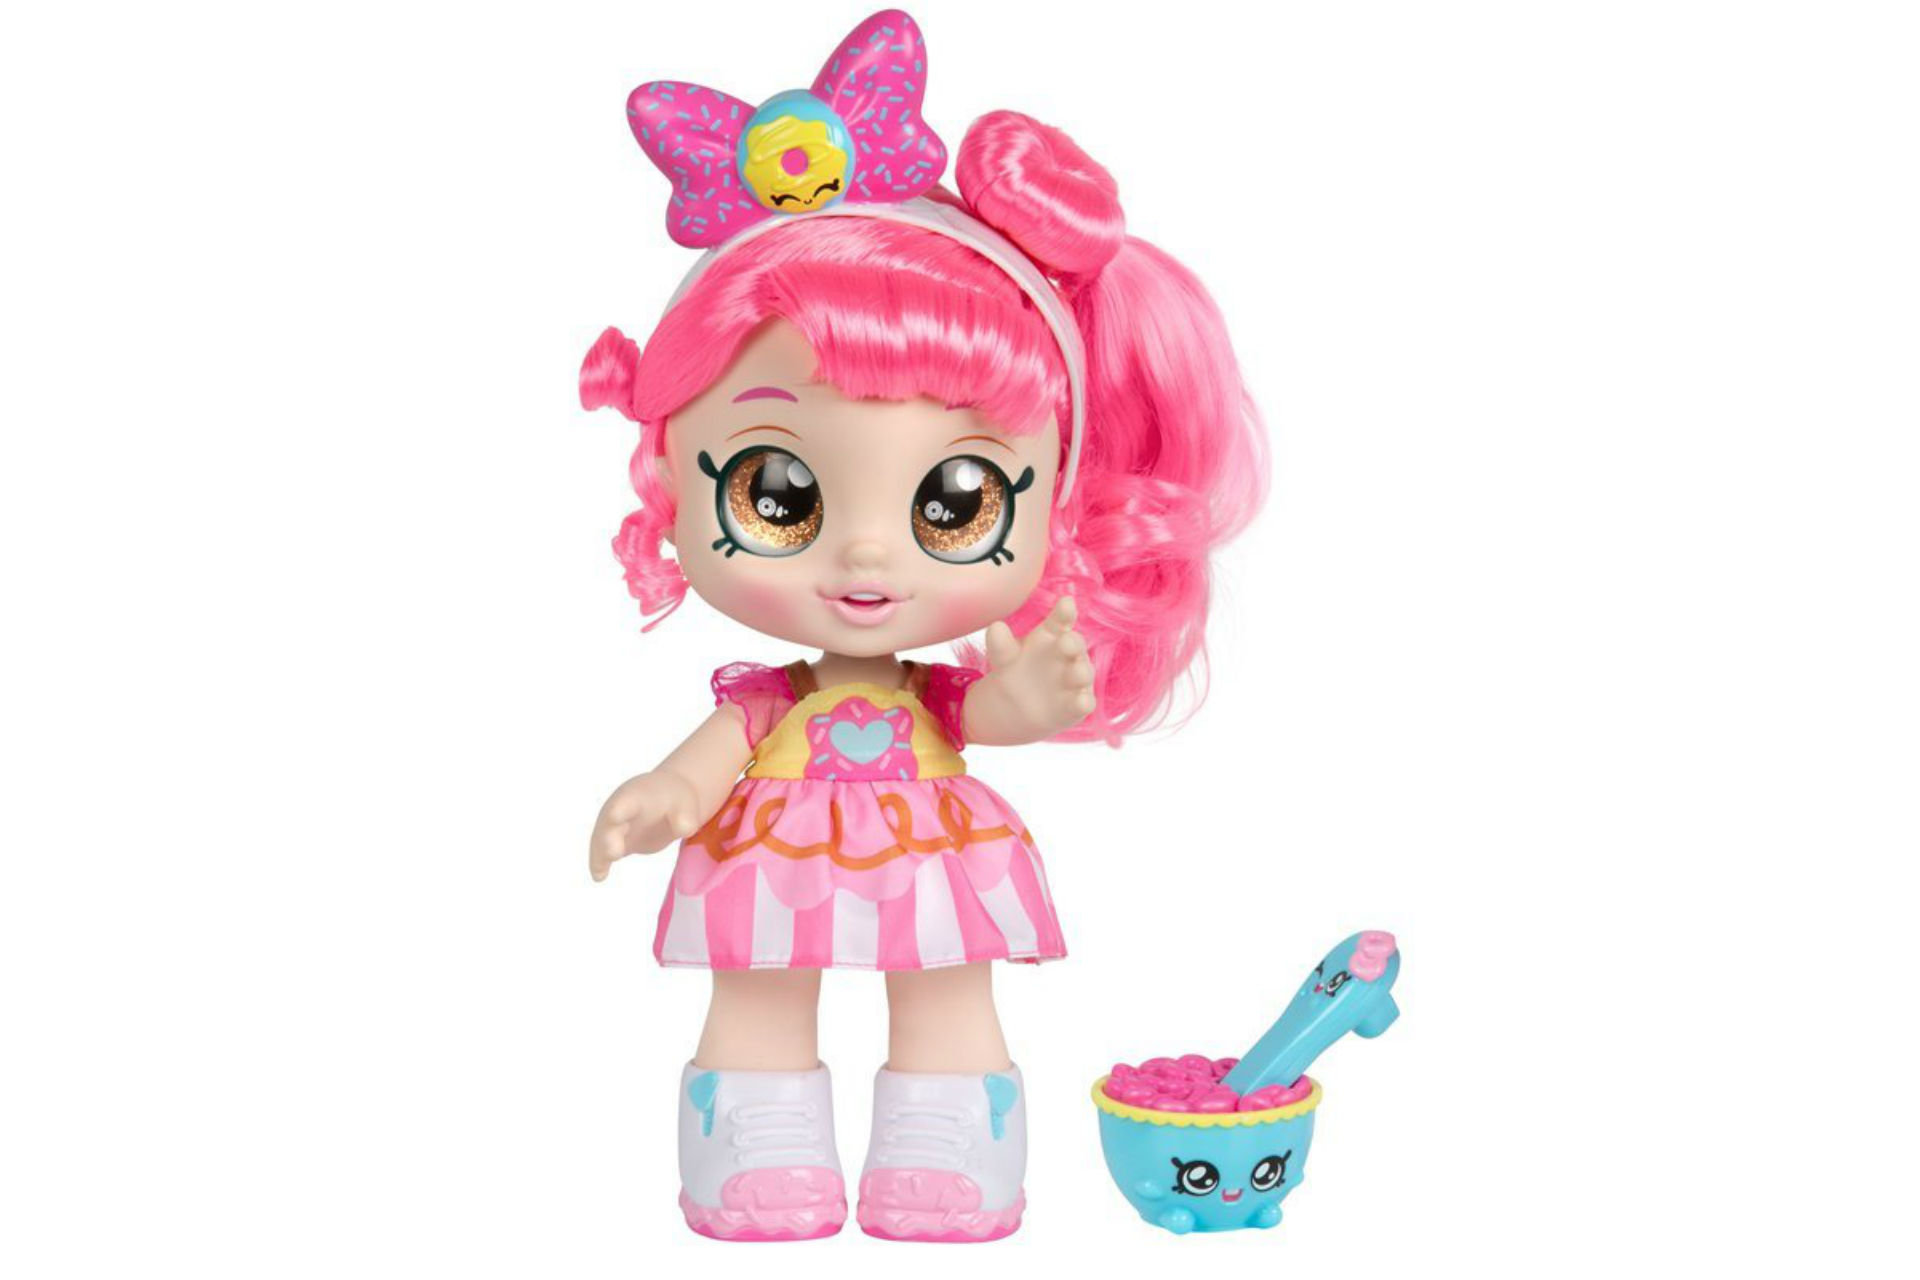 doll with pink hair and accessories